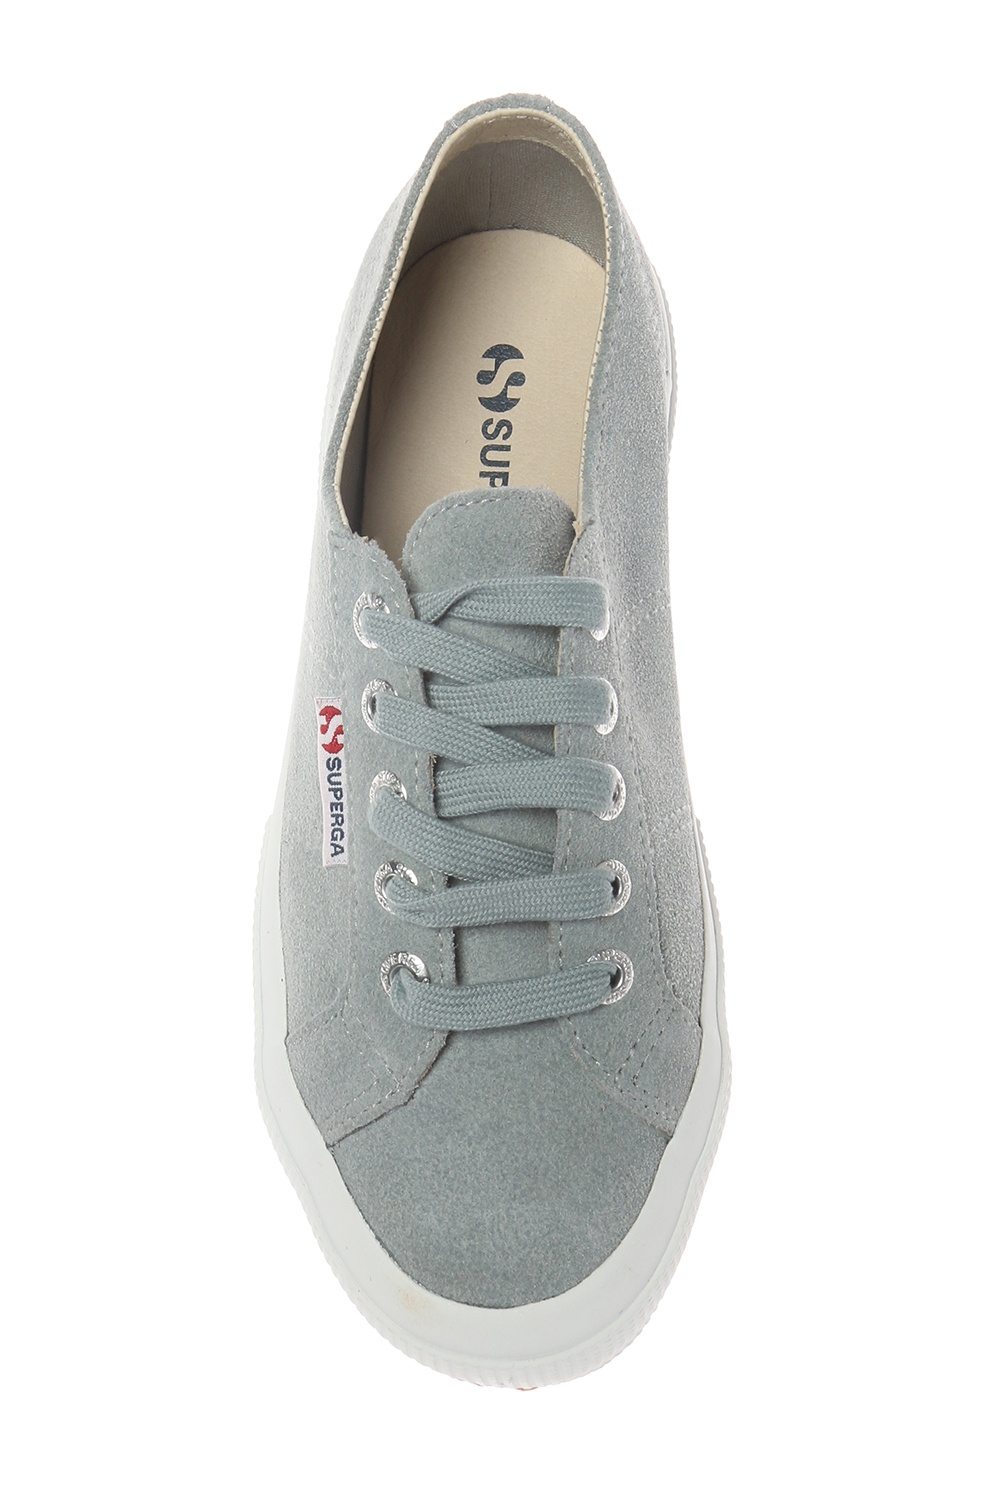 Superga '2790 Sueu' sport shoes